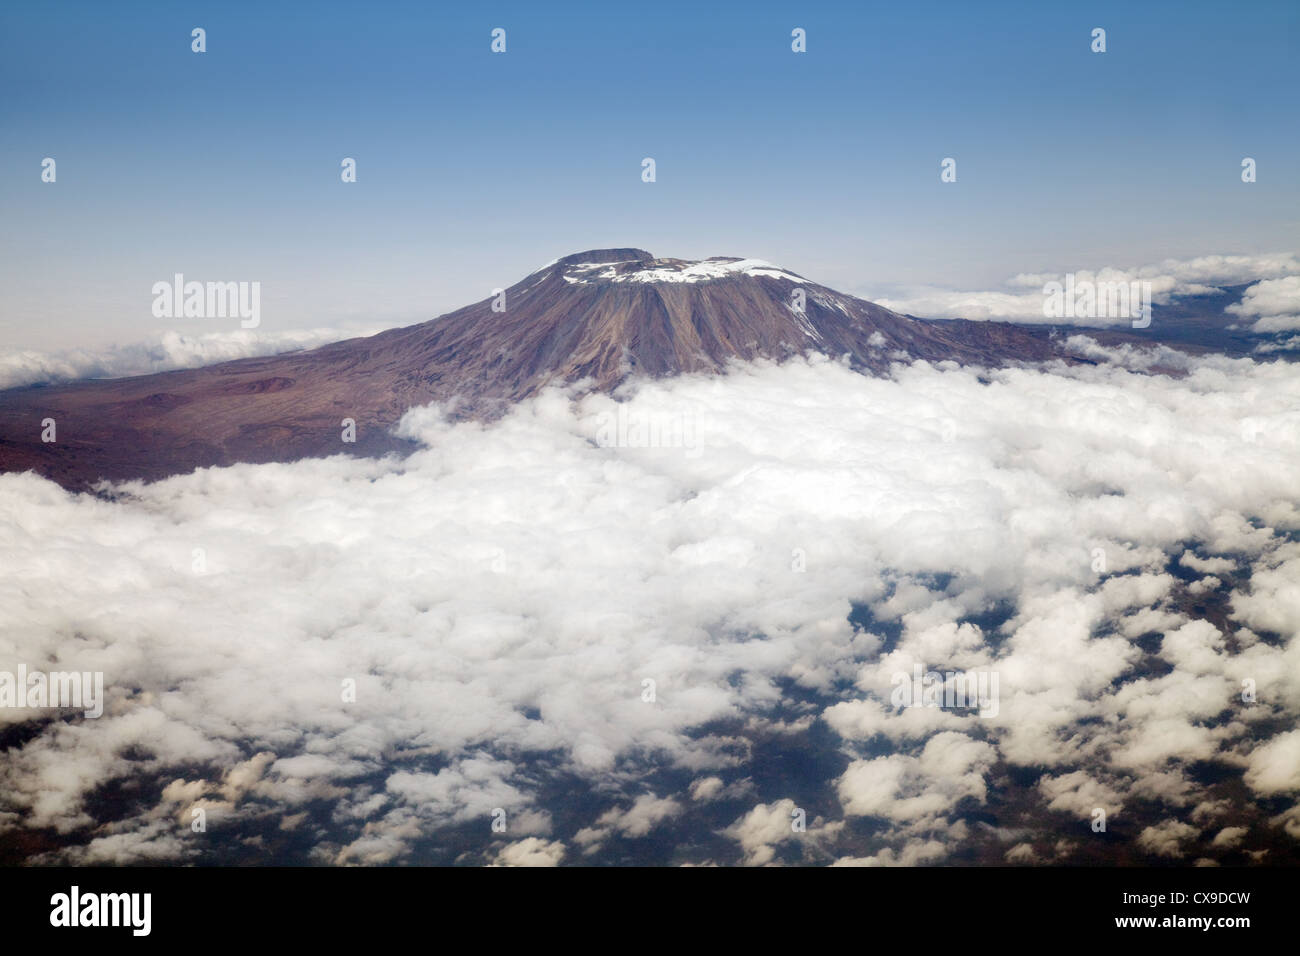 Mount Kilimanjaro, Tanzania Africa - aerial view seen from the BA flight from Dar es Salaam to Heathrow - Stock Image